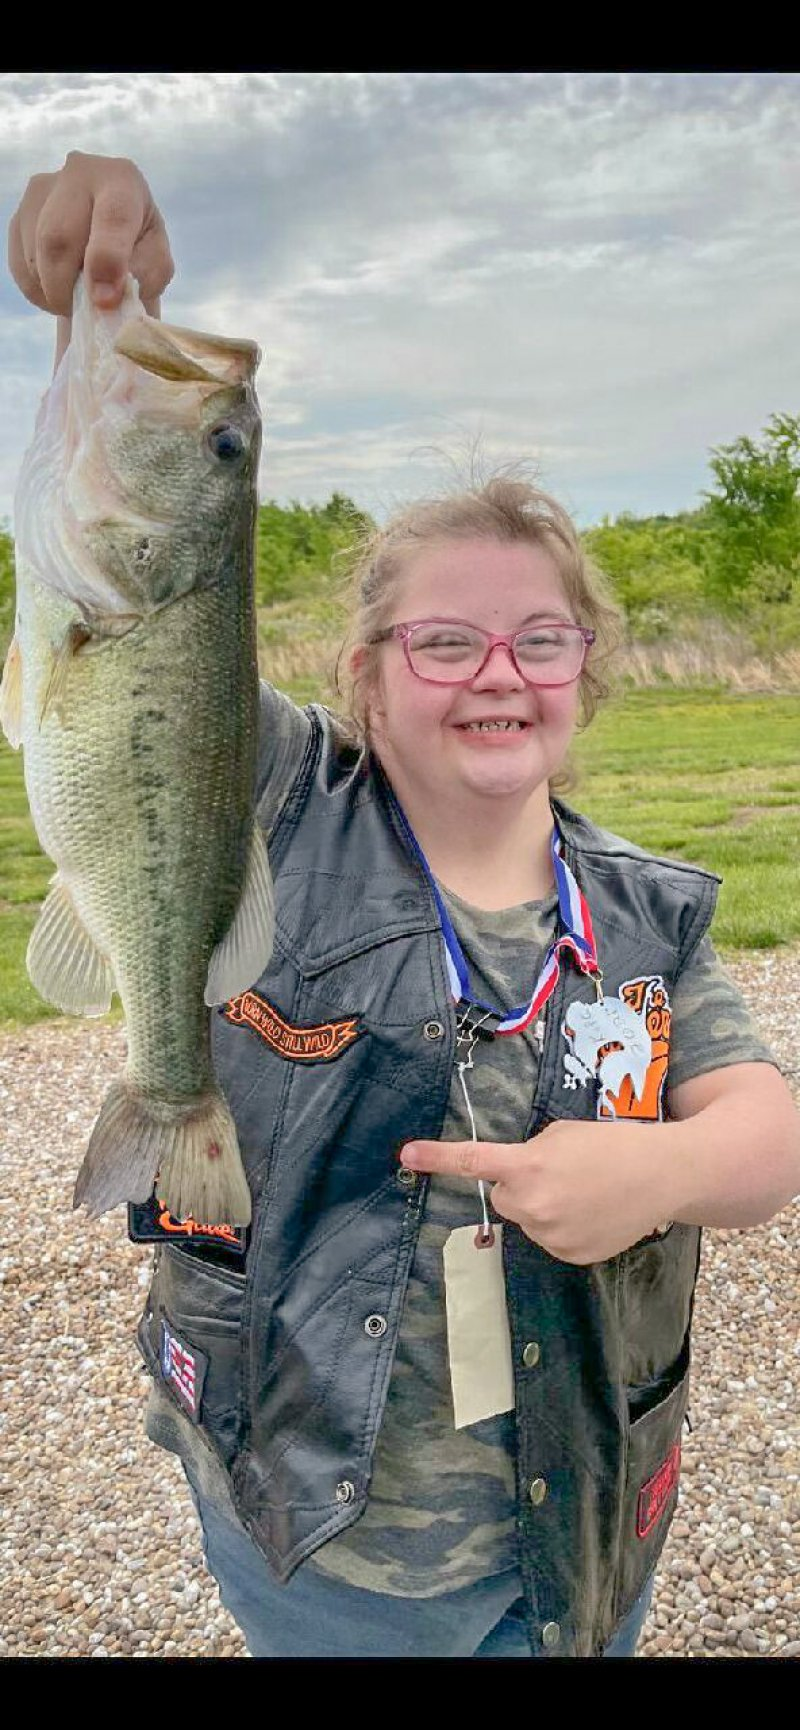 Tess Fuller of Boonville shows off the 18-inch largemouth bass she landed during the 2021 Knights of Columbus Special Needs Fishing Tournament, held May 15. Submitted photo